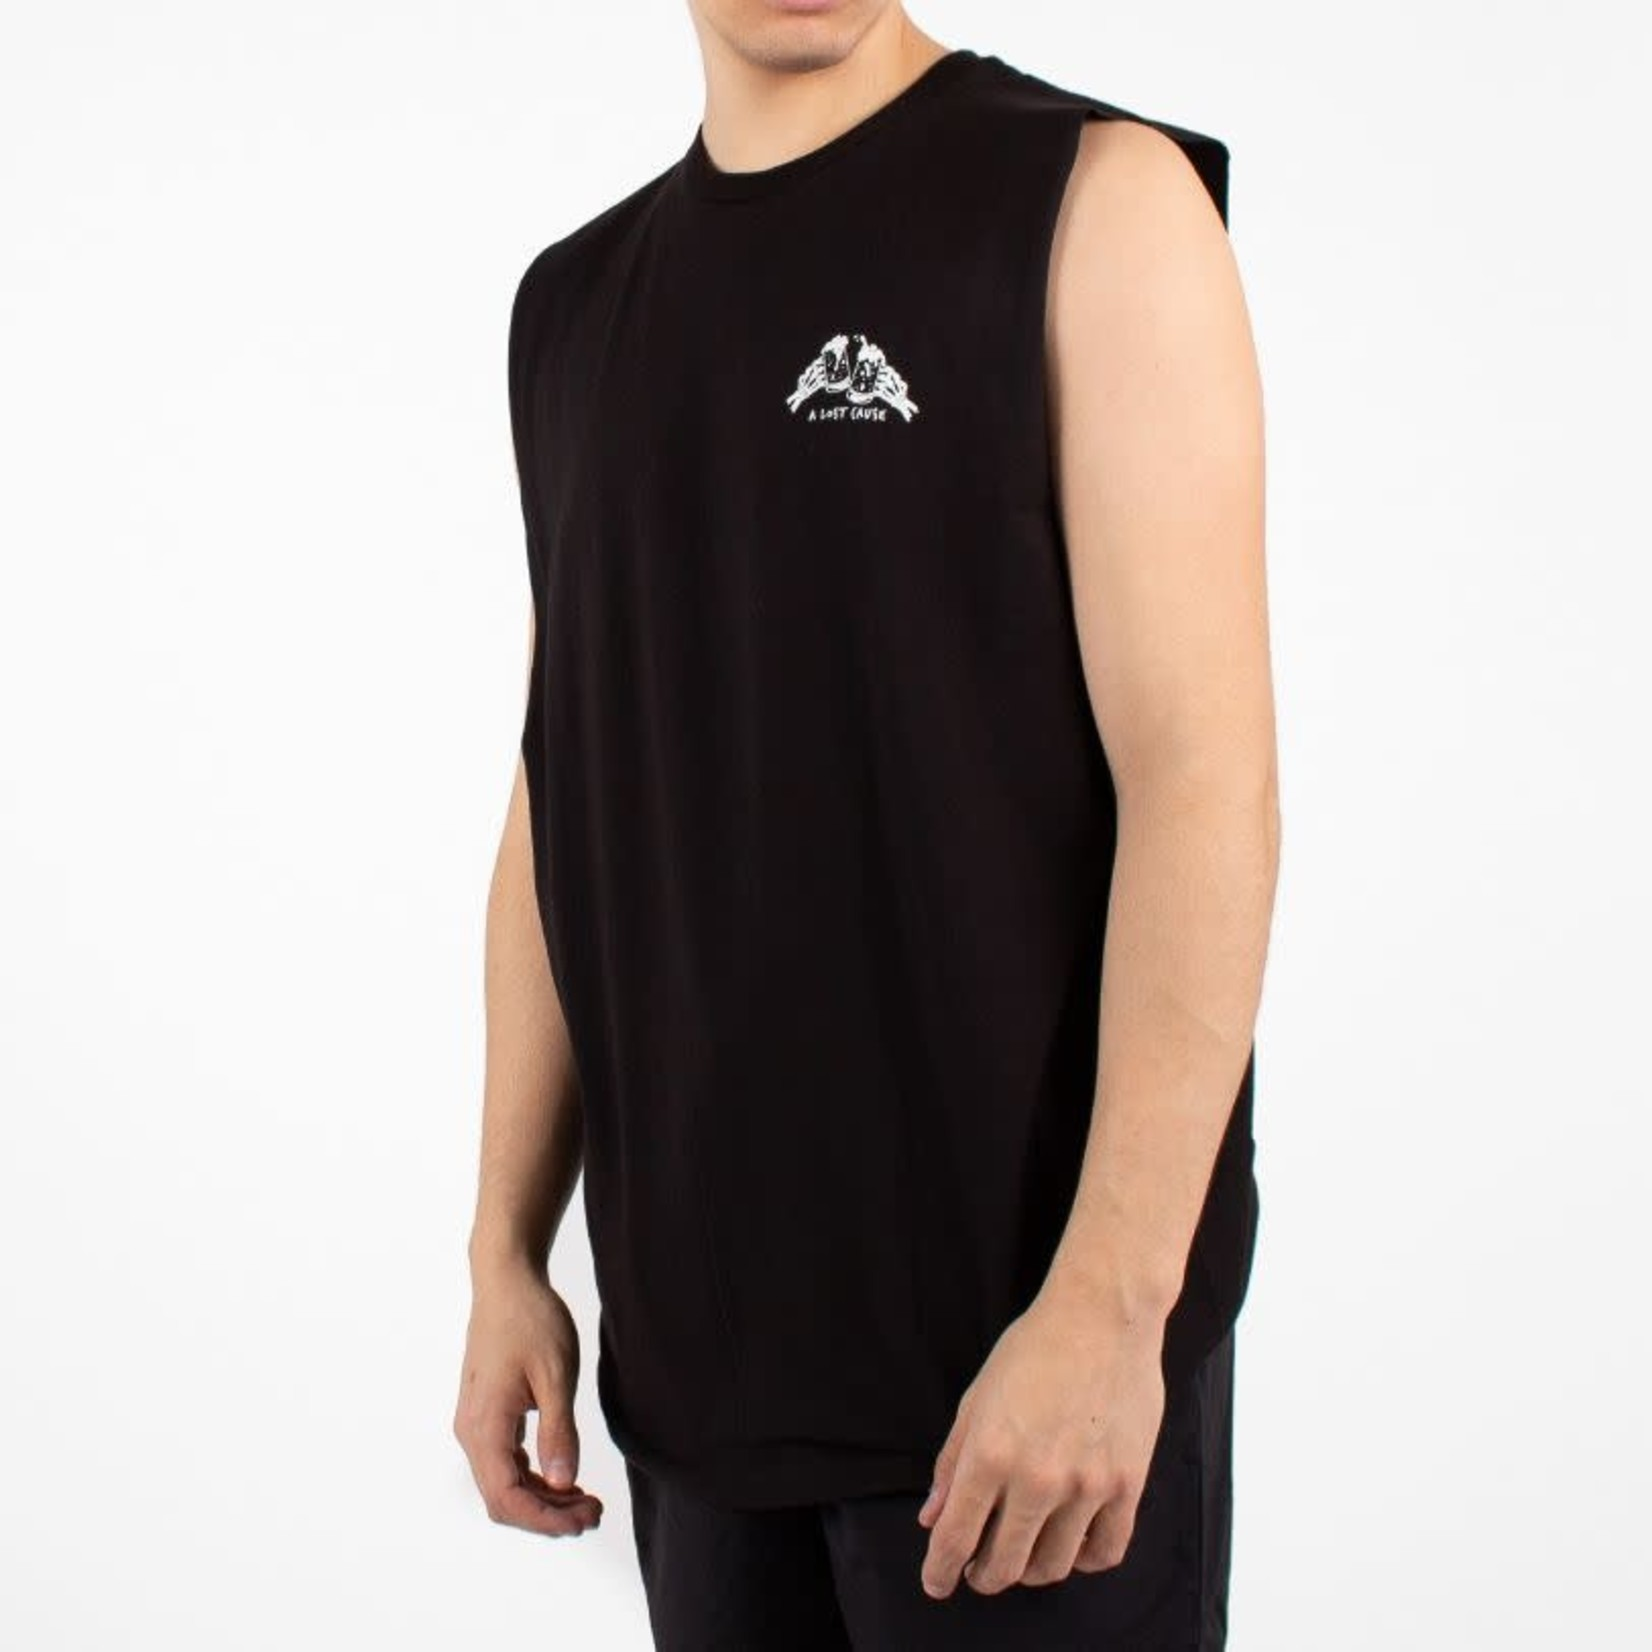 A Lost Cause A Lost Cause : Party Time V2 Sleeve Less T-Shirt